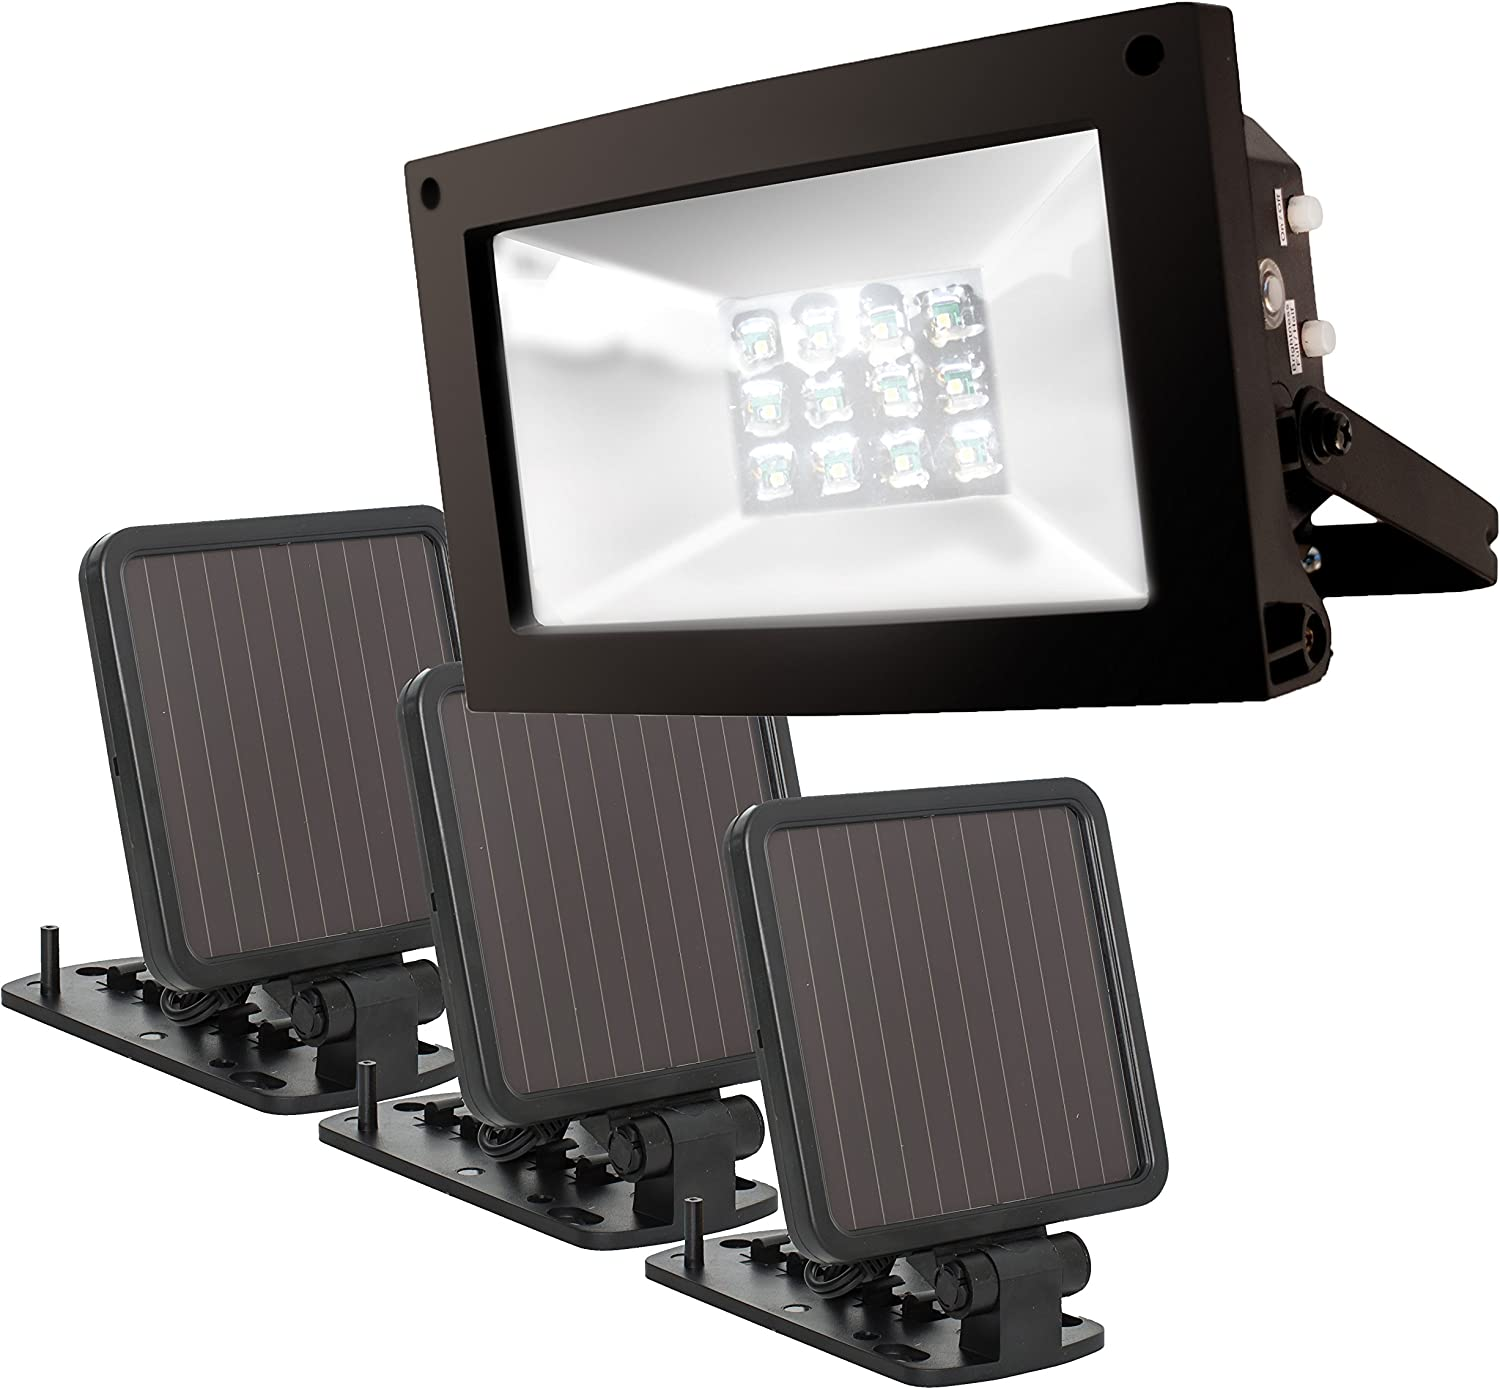 Maxsa 40331 Ultra-Bright Purchase 12 Hour lig to Solar-Powered Floodlight online shopping